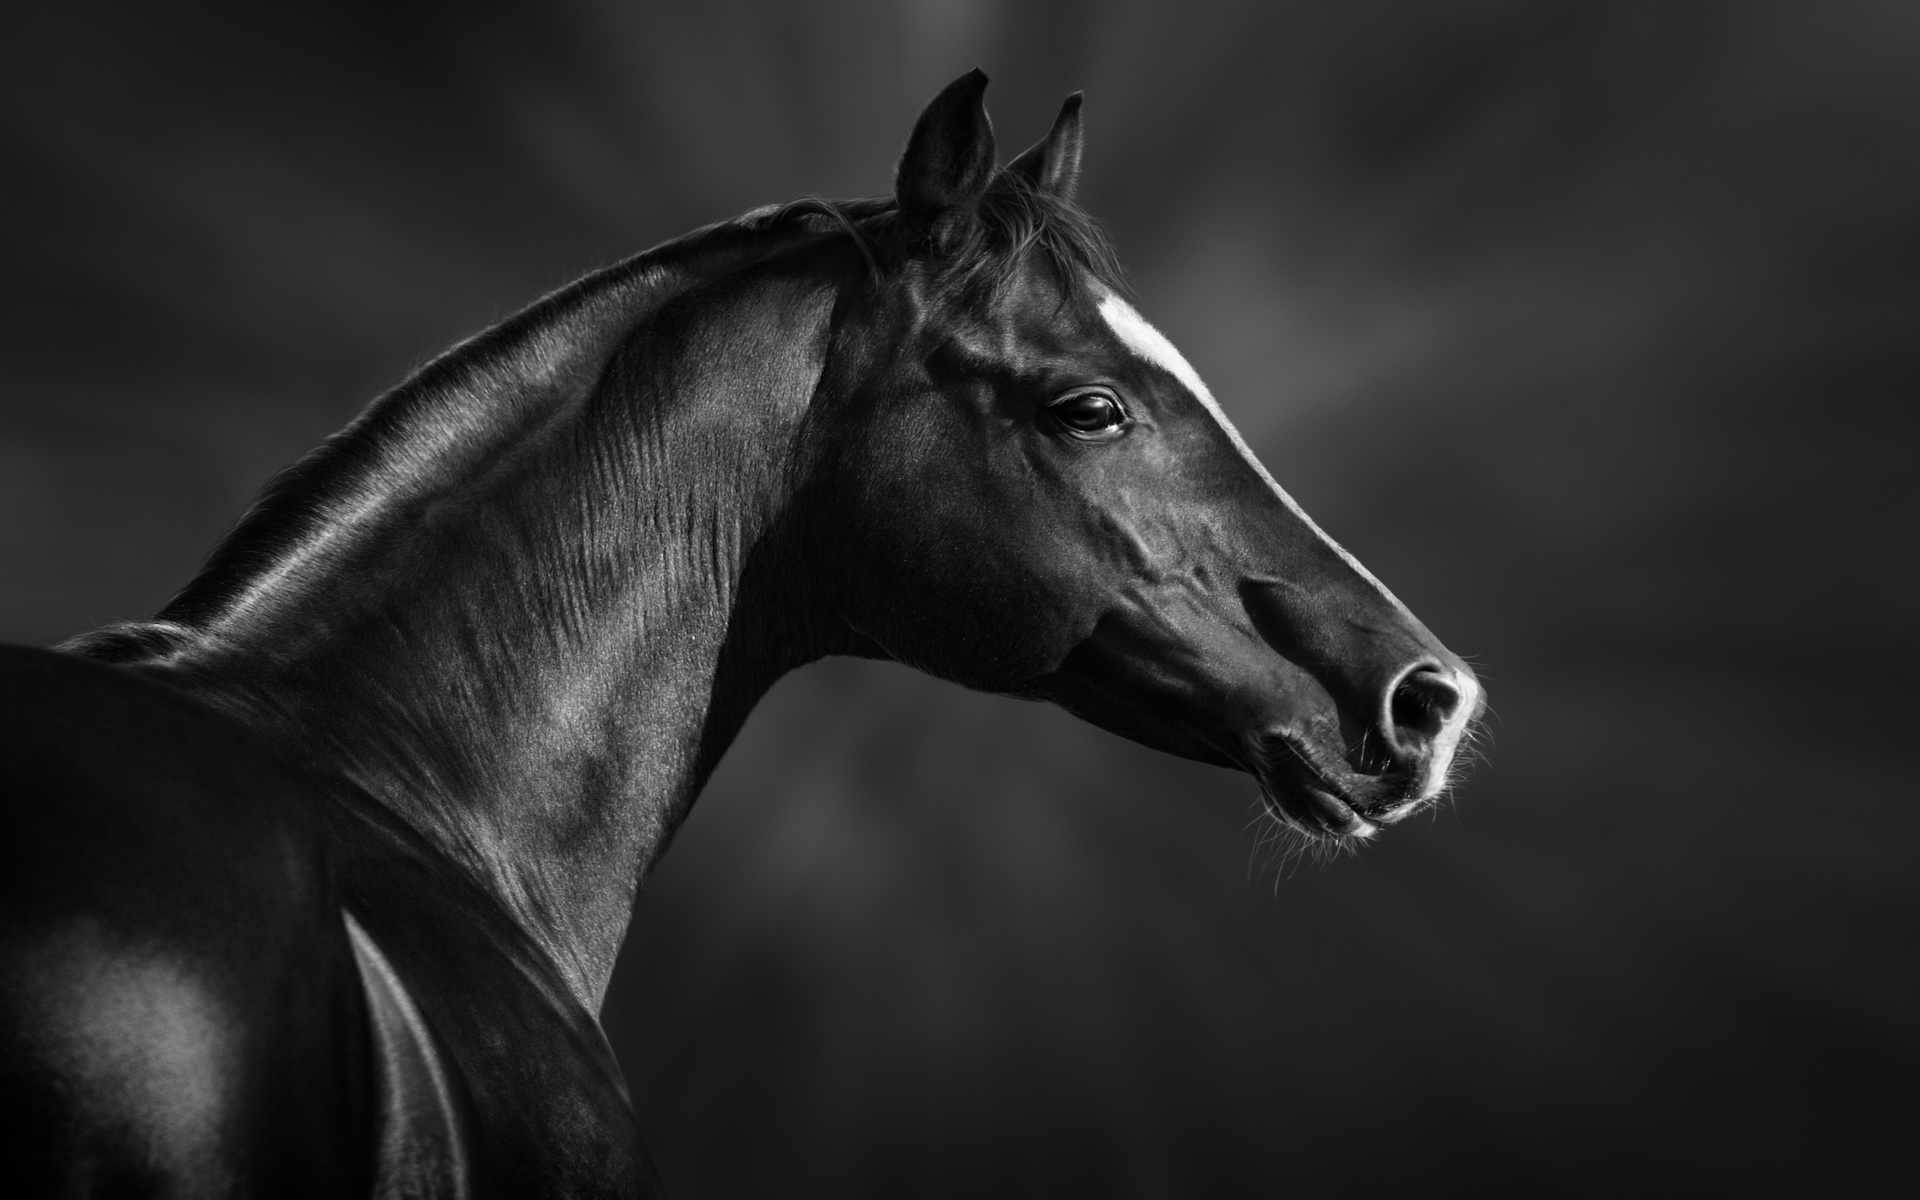 Horse Full HD Wallpaper And Background Image